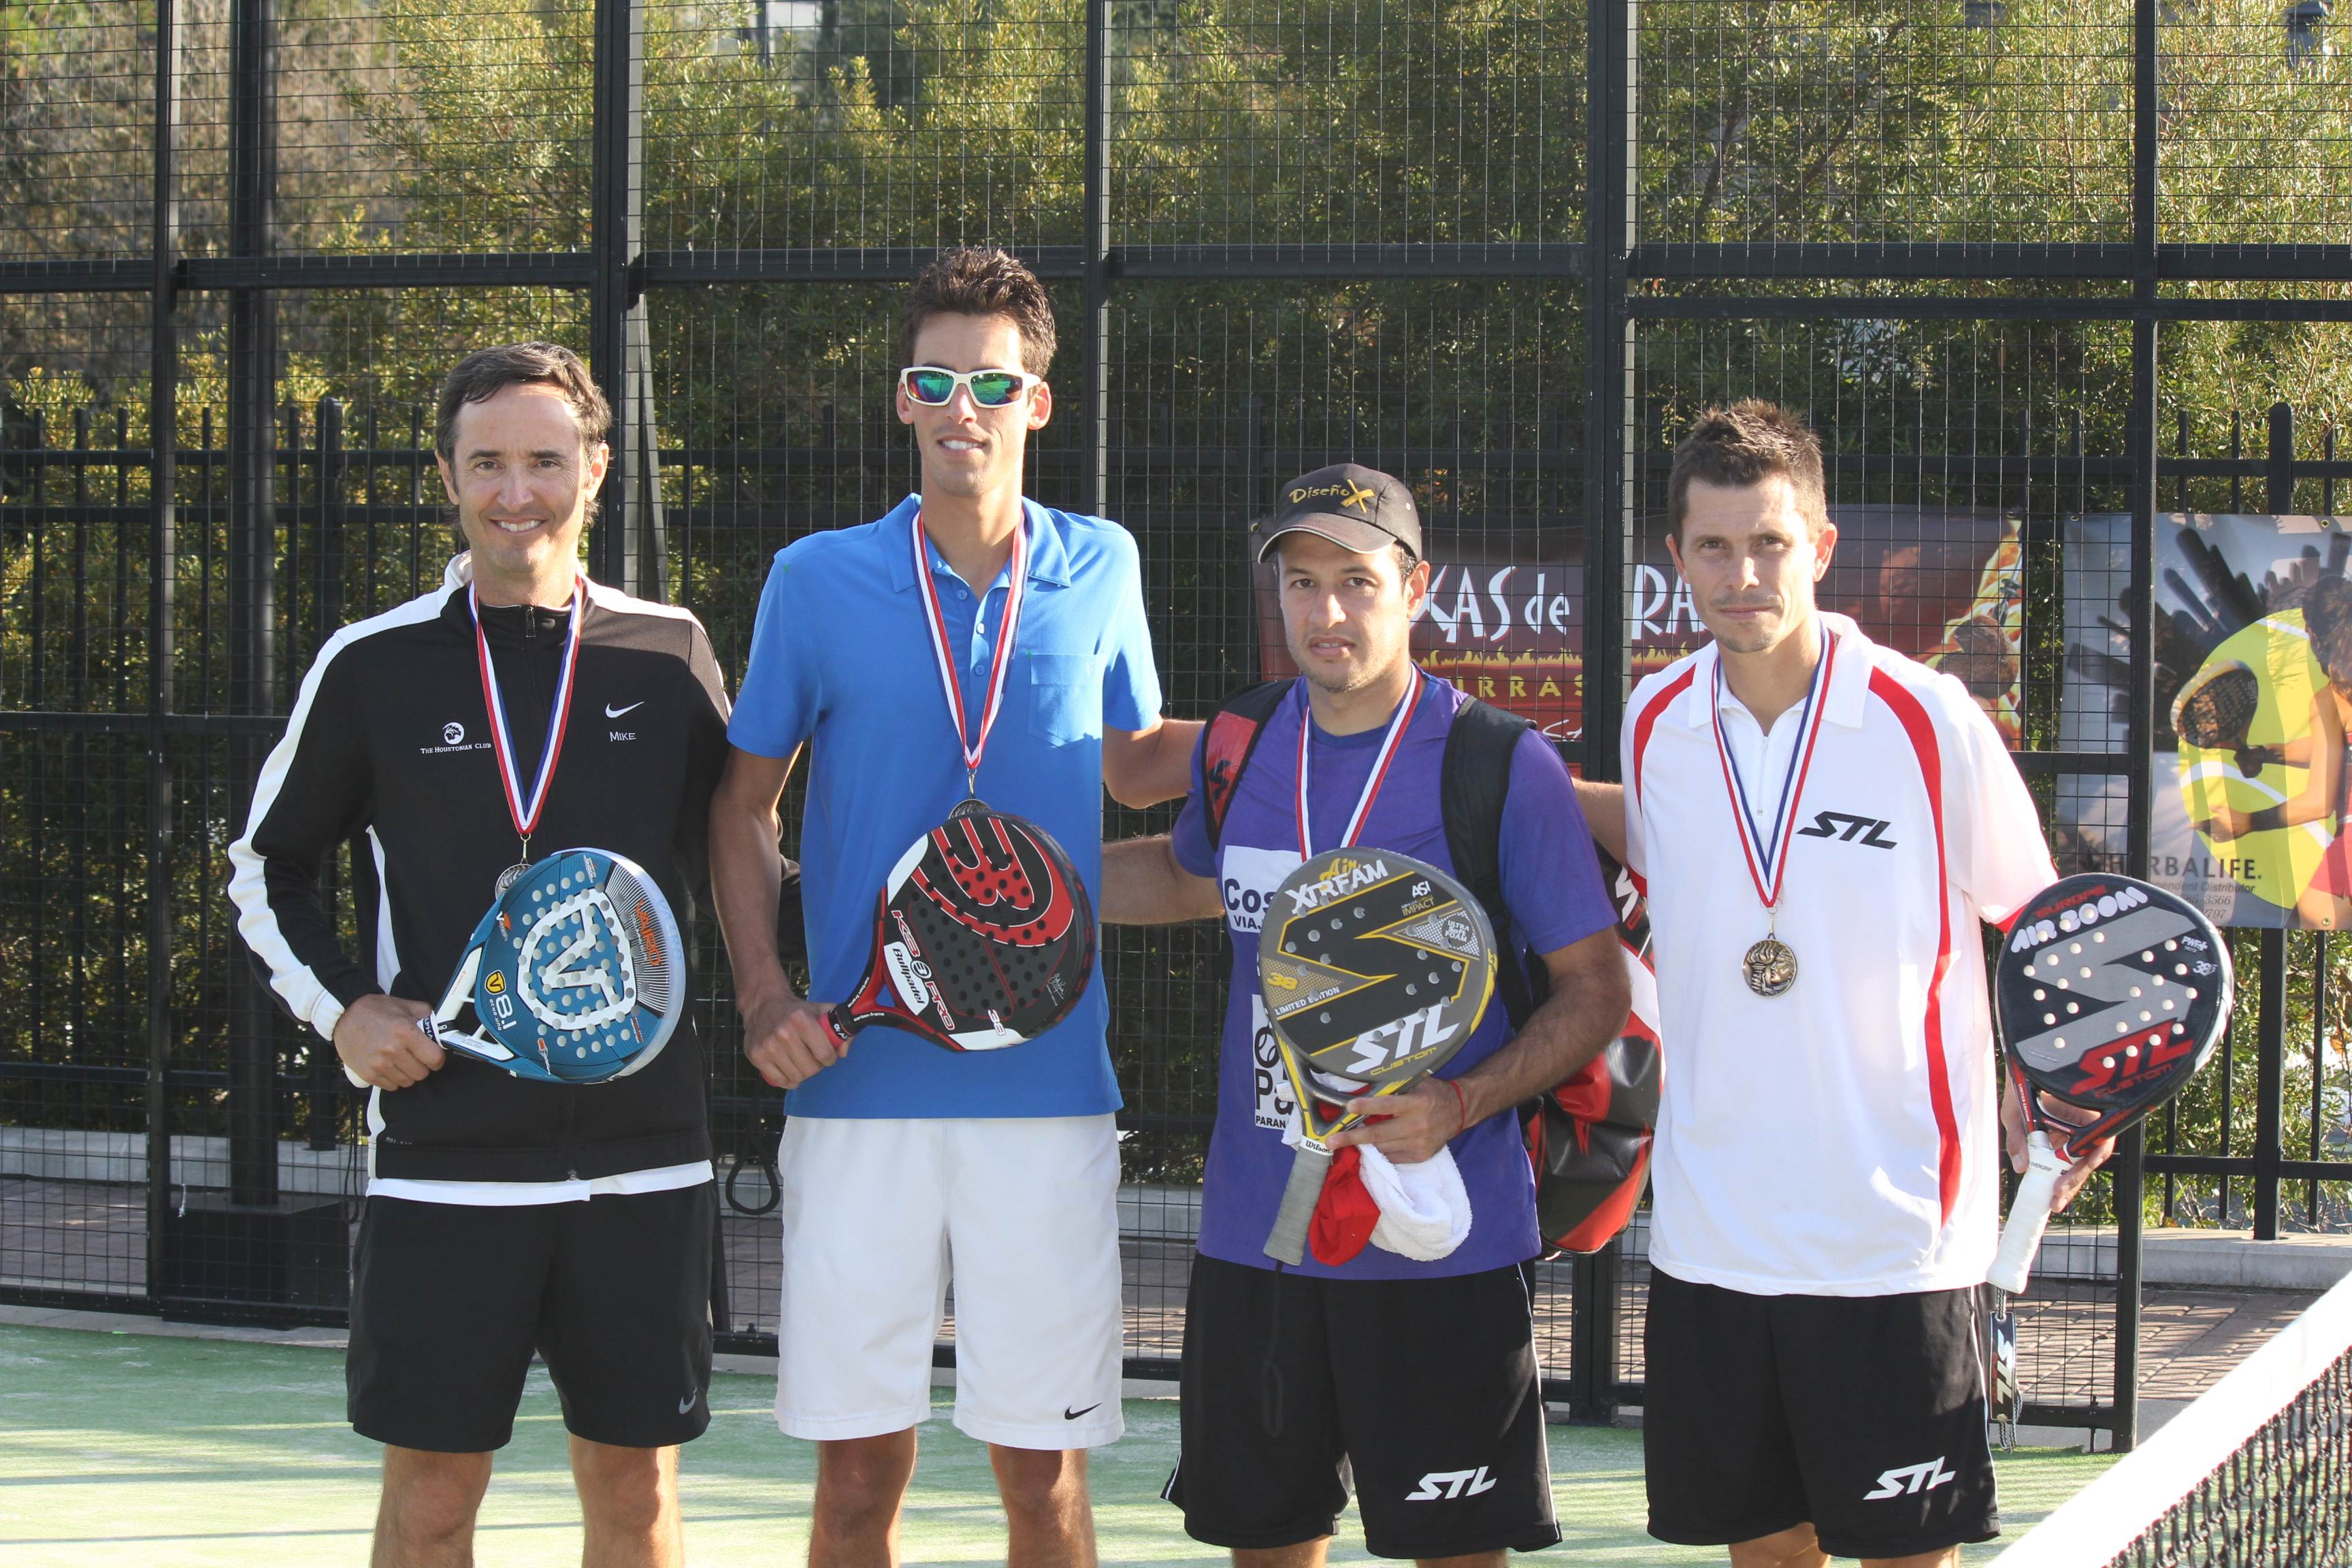 Final Men's: Winners Luis Adolfo Vargas/ Fernando Alarcon Runner up: Francisco Riverol/ Mike May